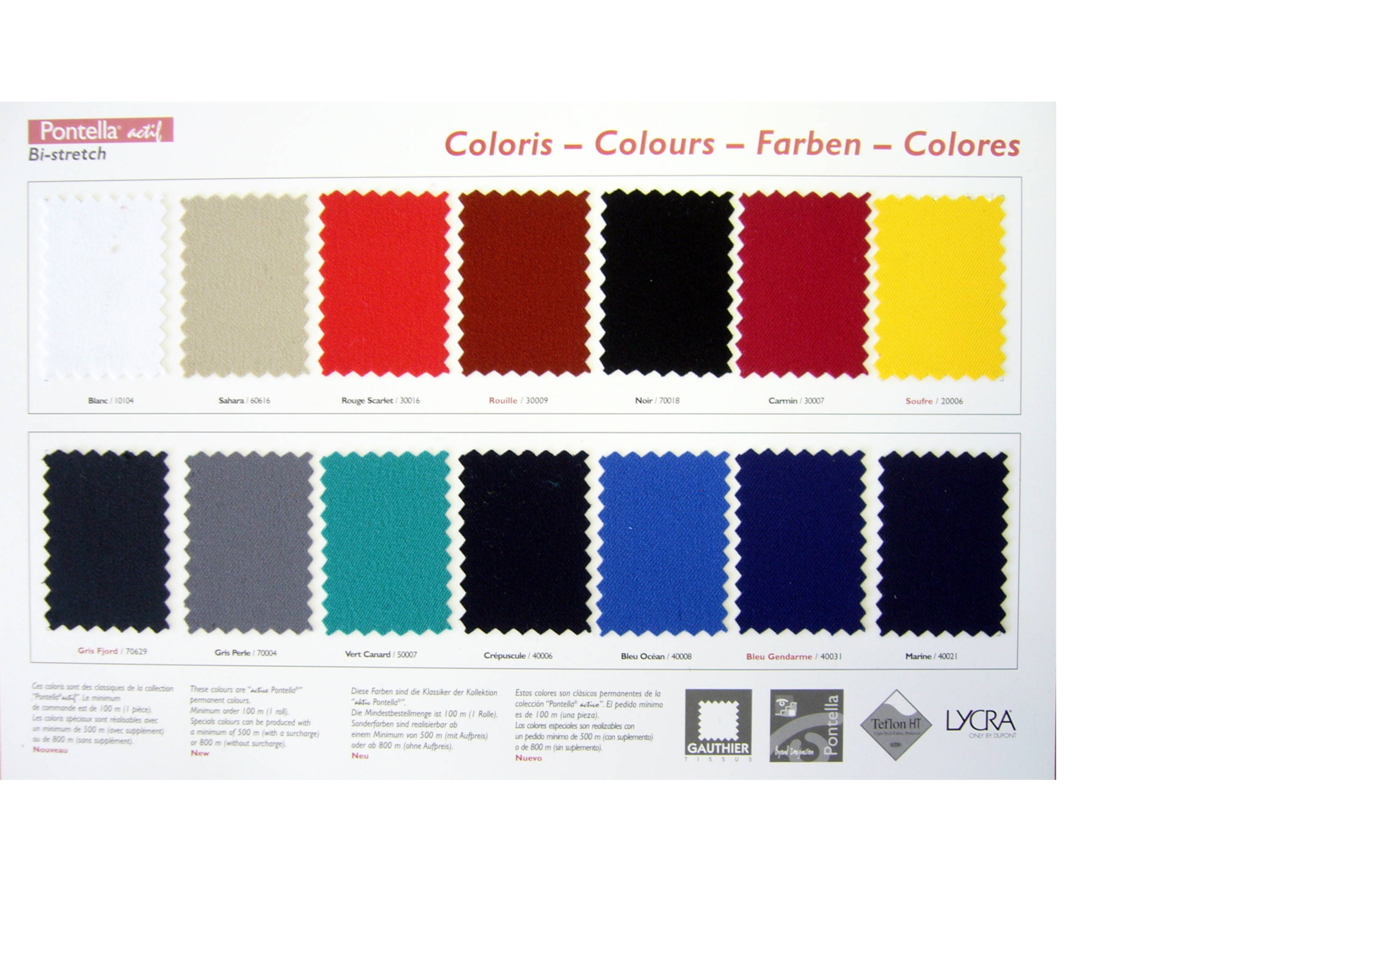 Colour range of Pontella actif fabrics